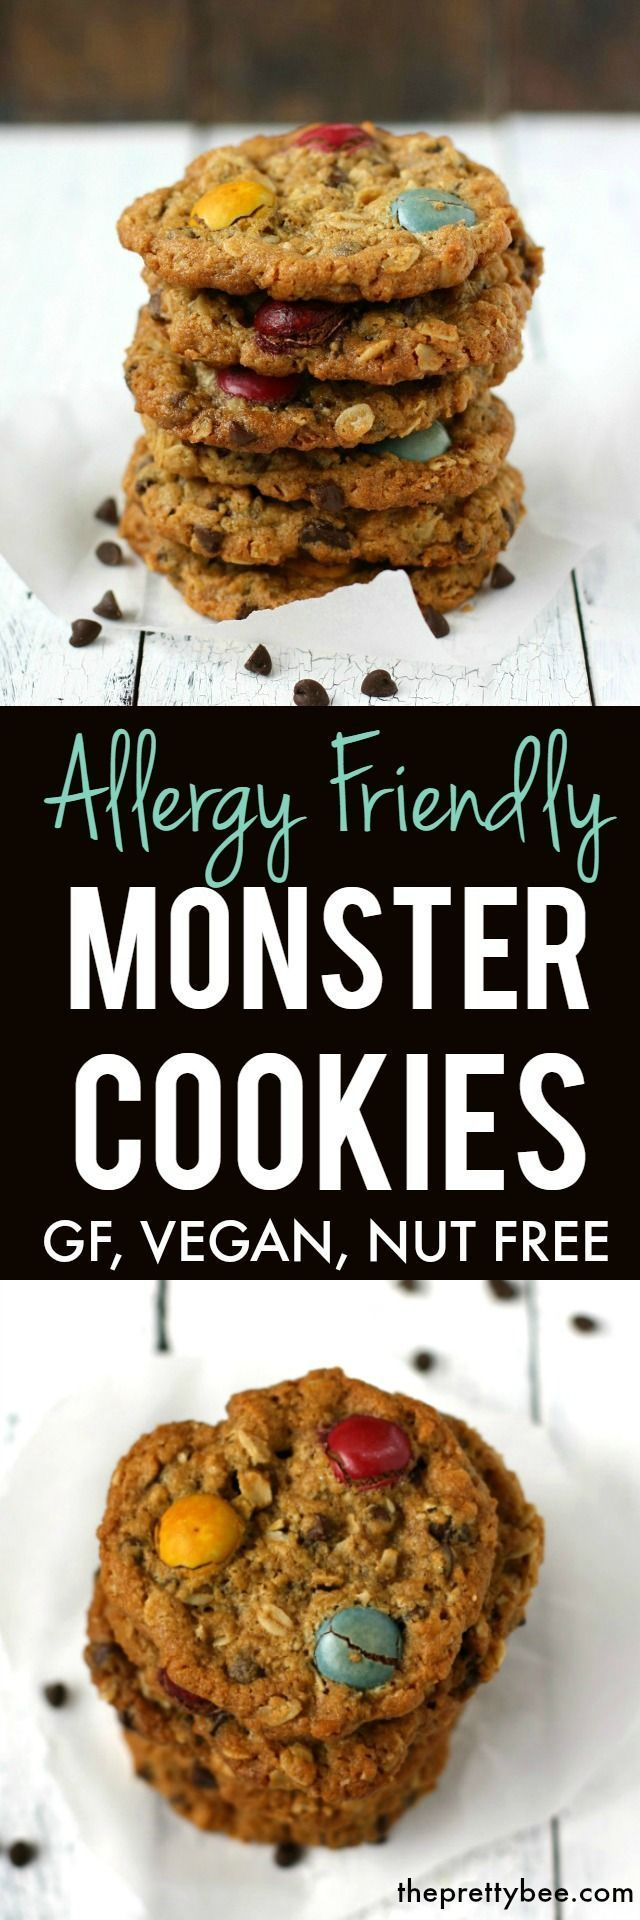 These allergy friendly monster cookies are delicious, chewy, and free of the top 8 allergens! Loaded with chocolate and oats, these are always a big hit.